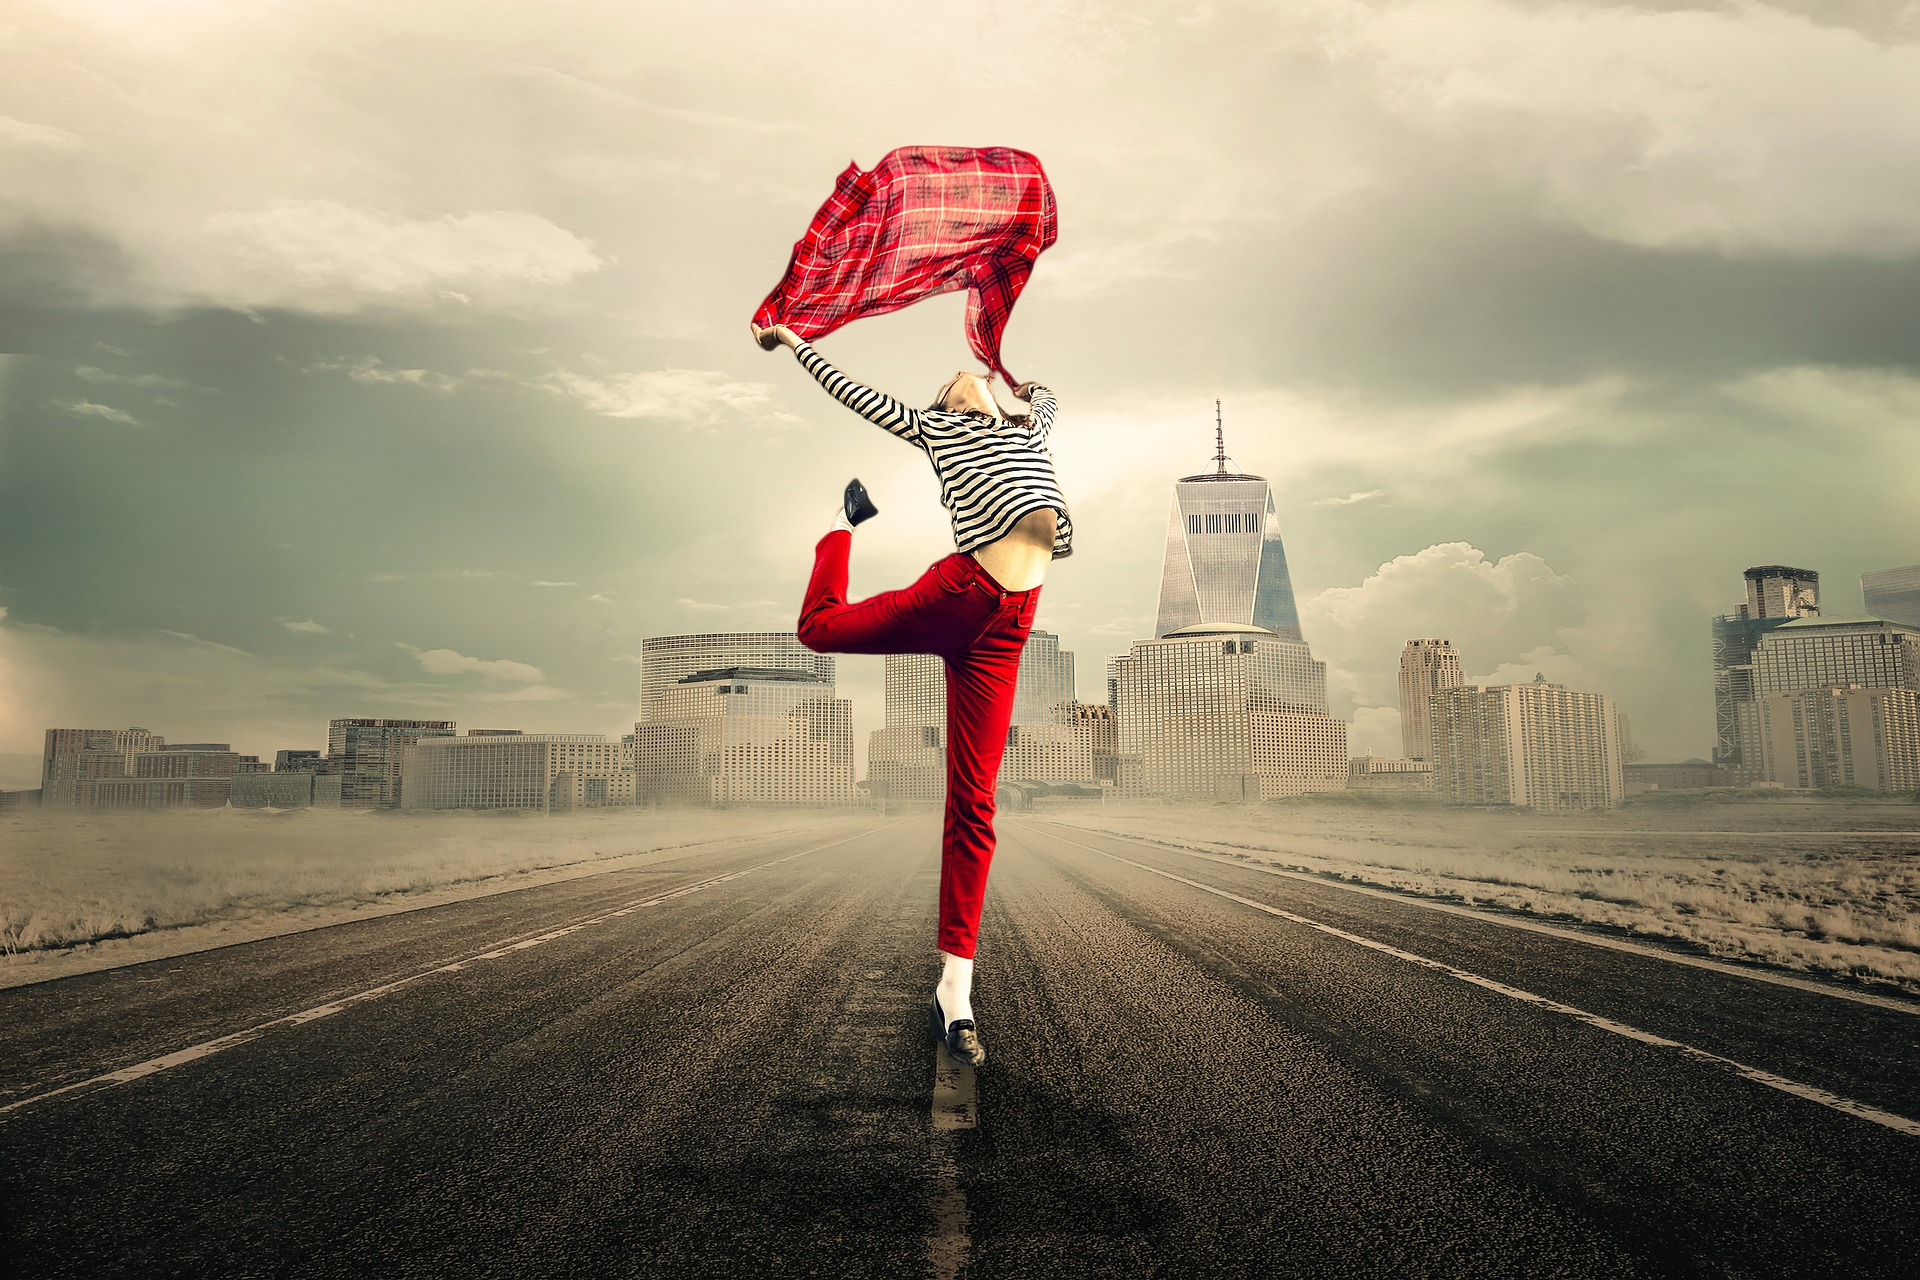 girl in red pants and striped black and white top holding a red scarf above her head and doing a ballet move. She is on a road, with buildings in the distance.